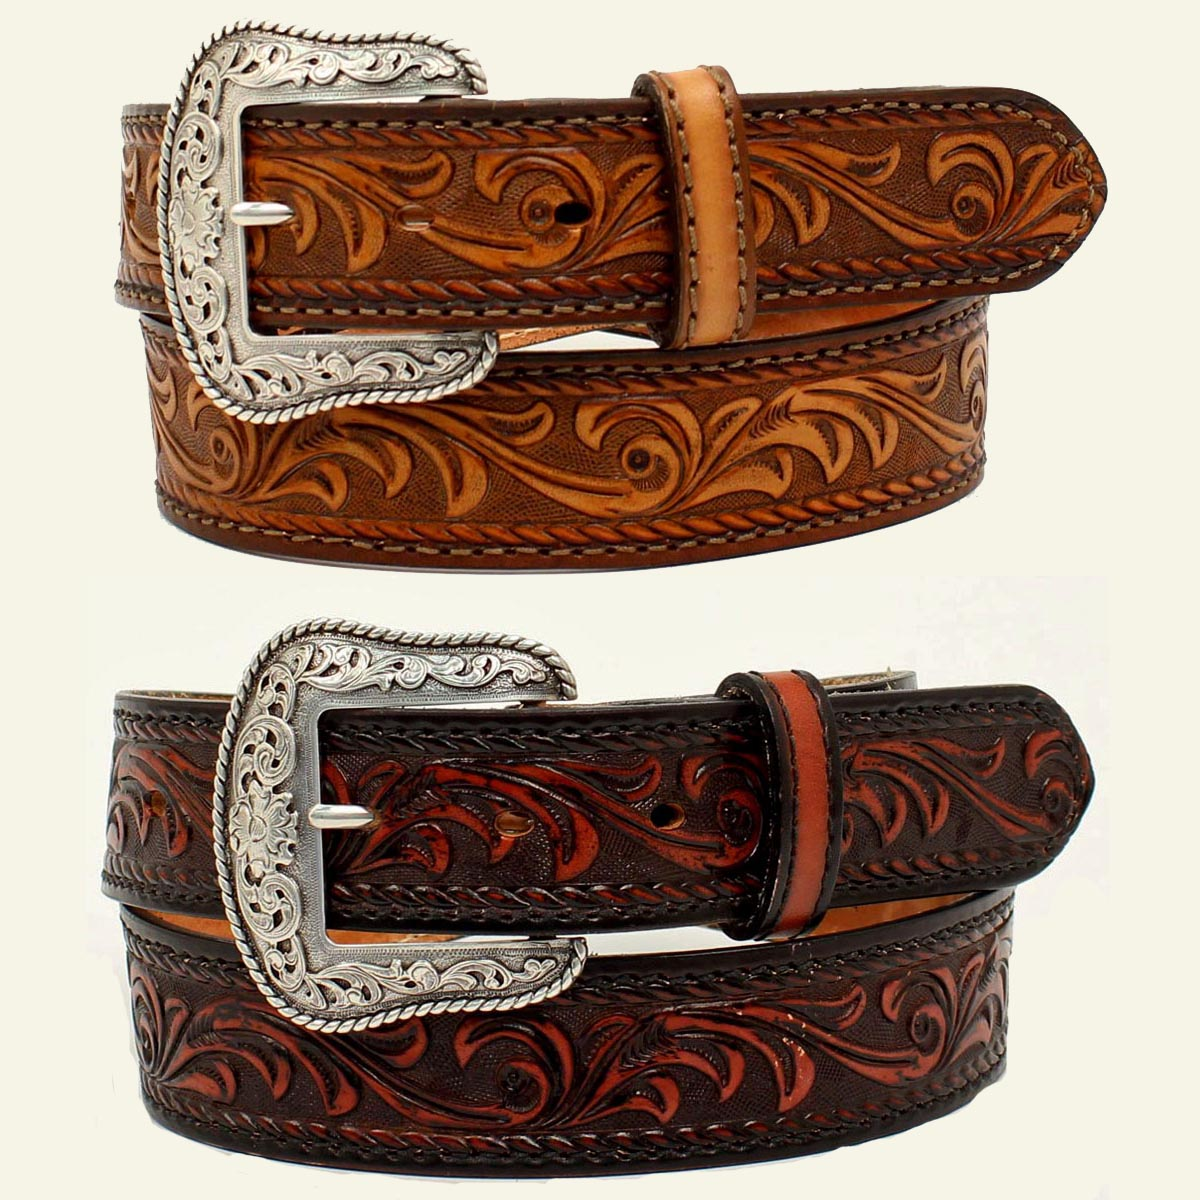 TOOLED WESTERN BELT MADE IN USA